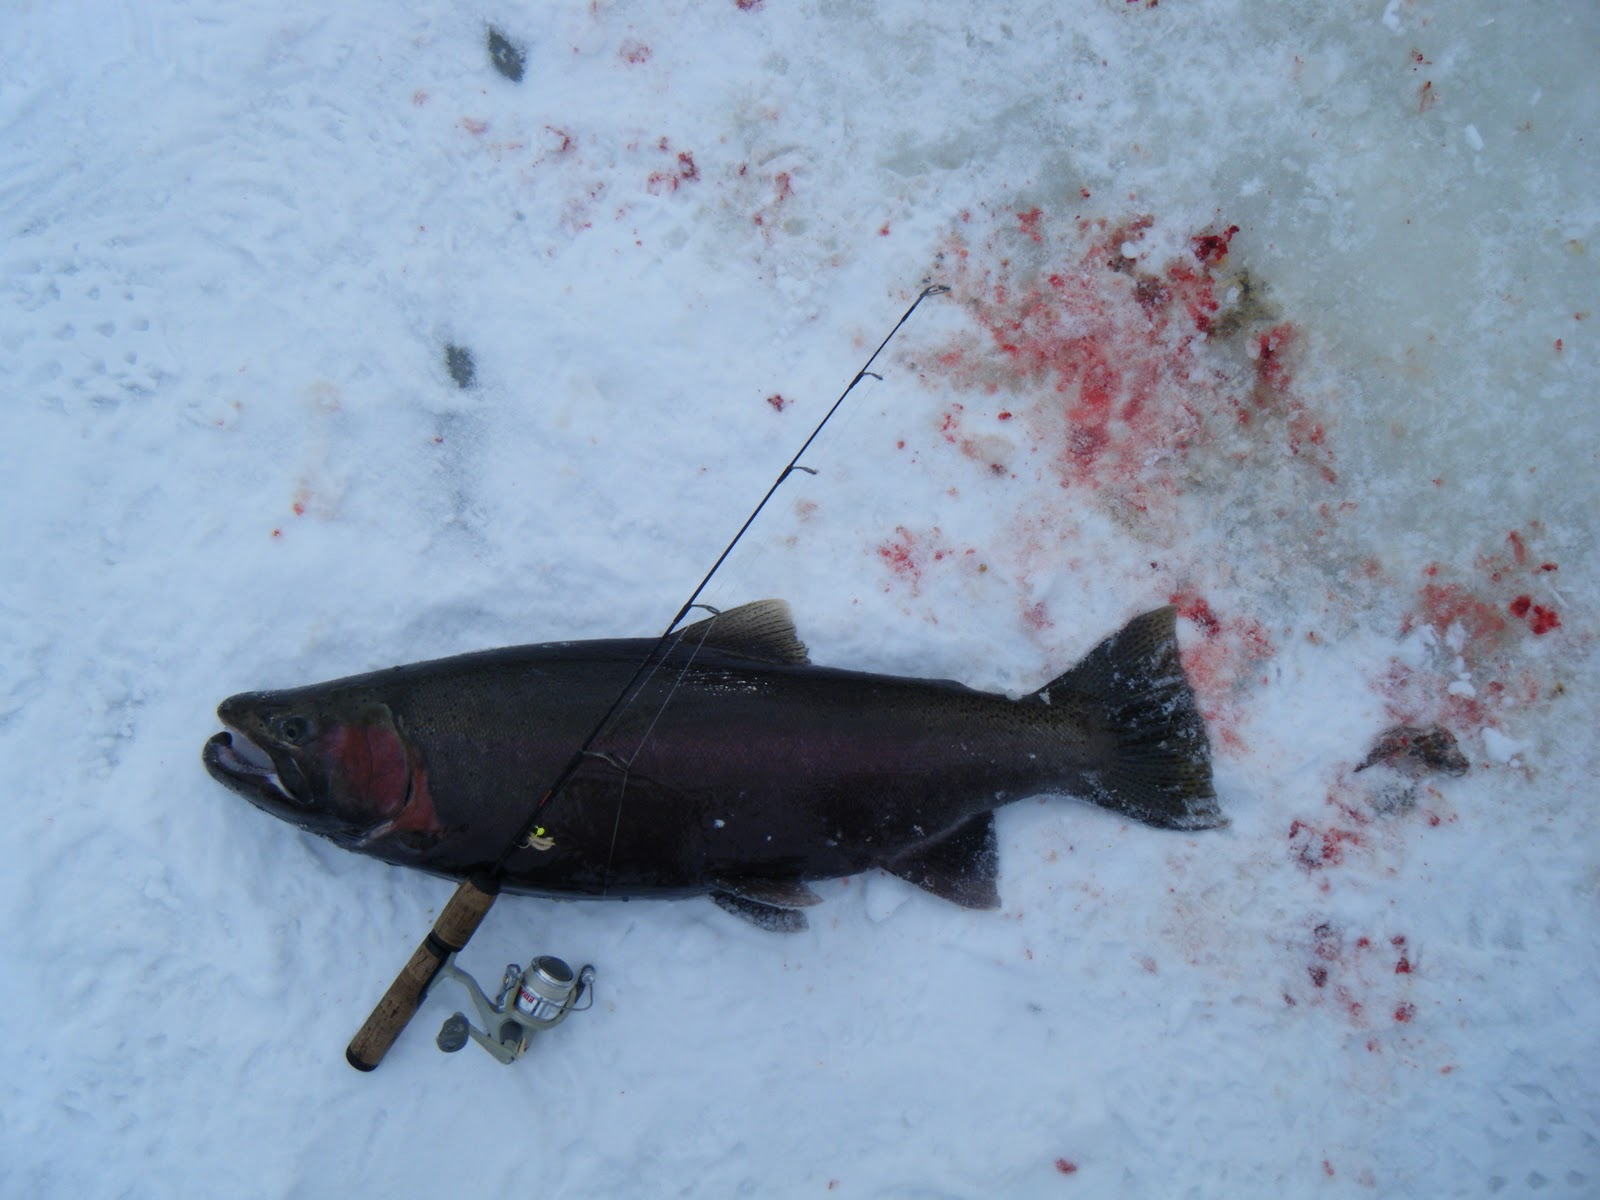 Wisconsin fishing reports ice fishing for great lakes trout for Jig fishing for trout